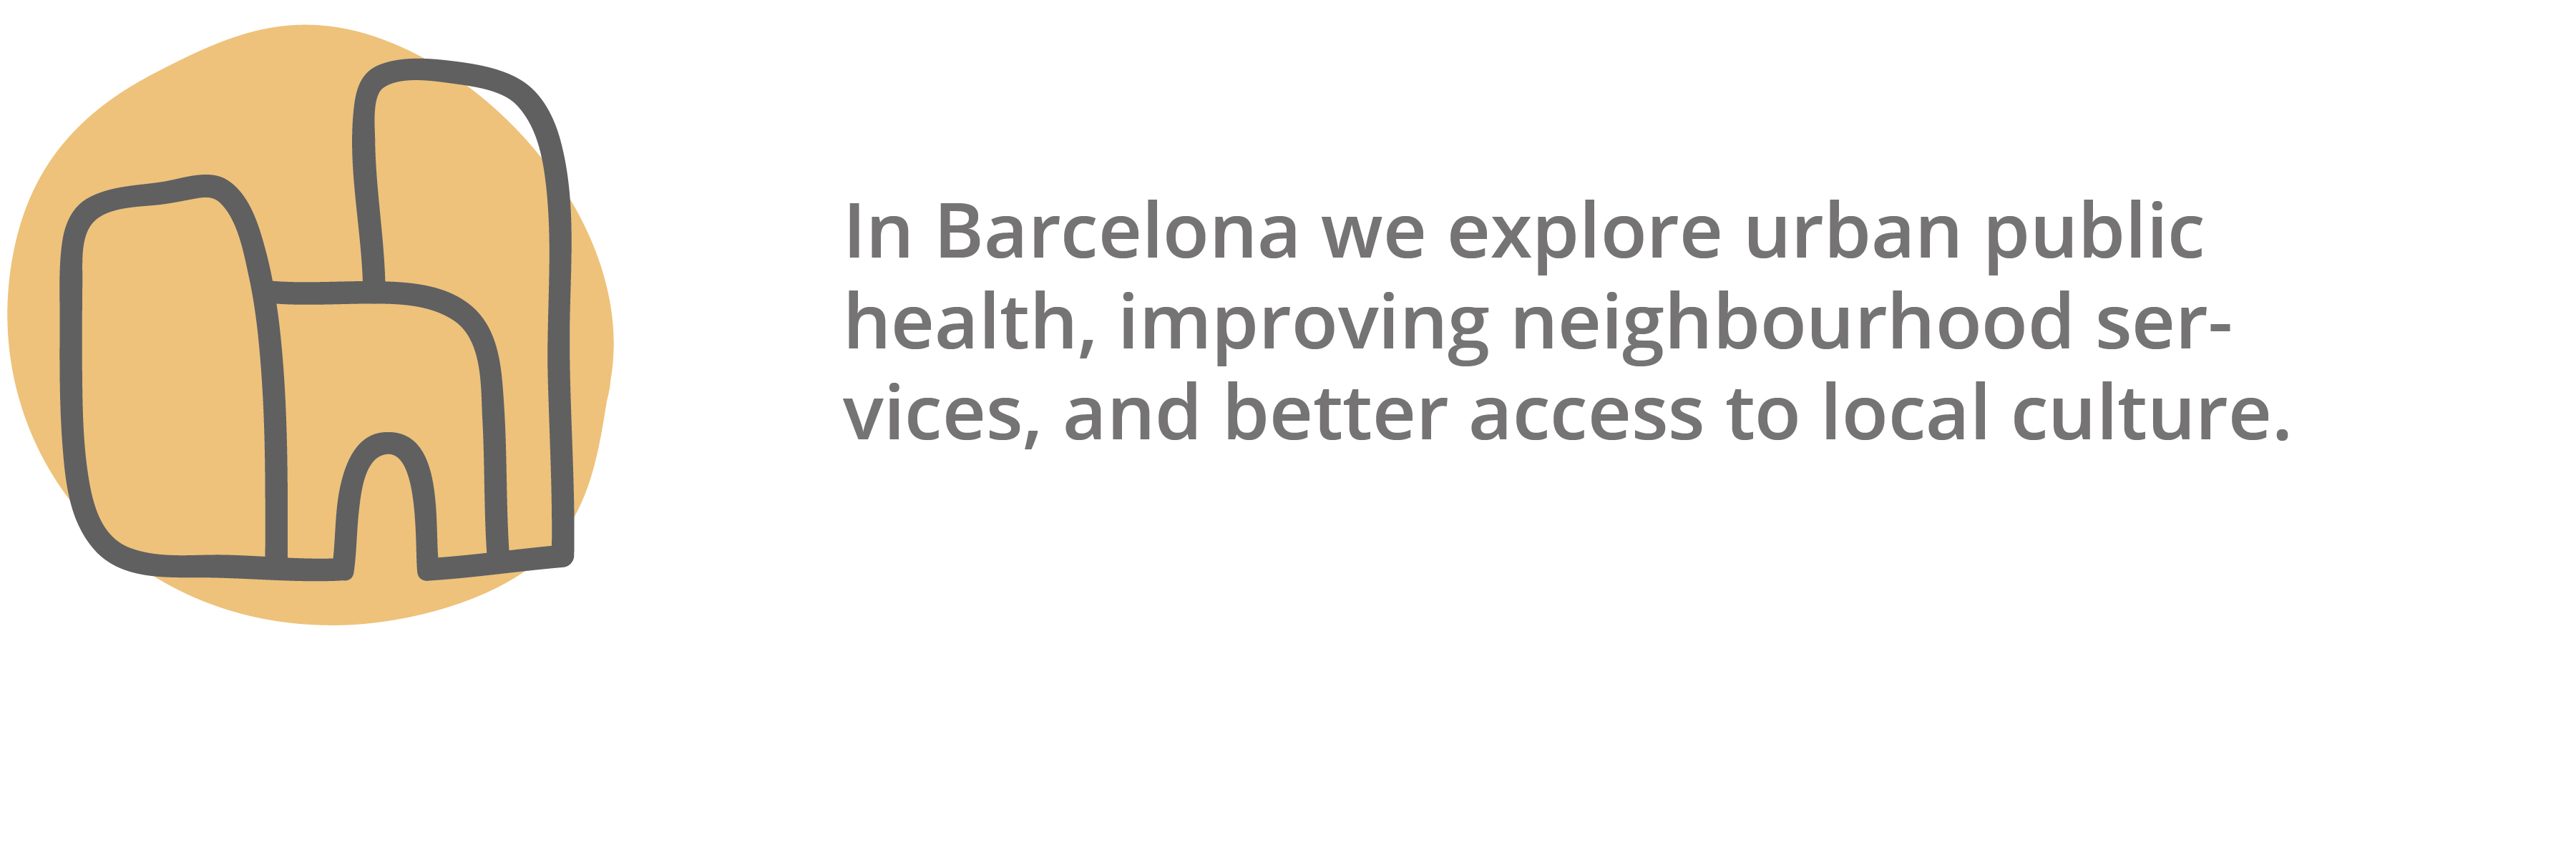 Barcelona | OPEN4CITIZENS Project